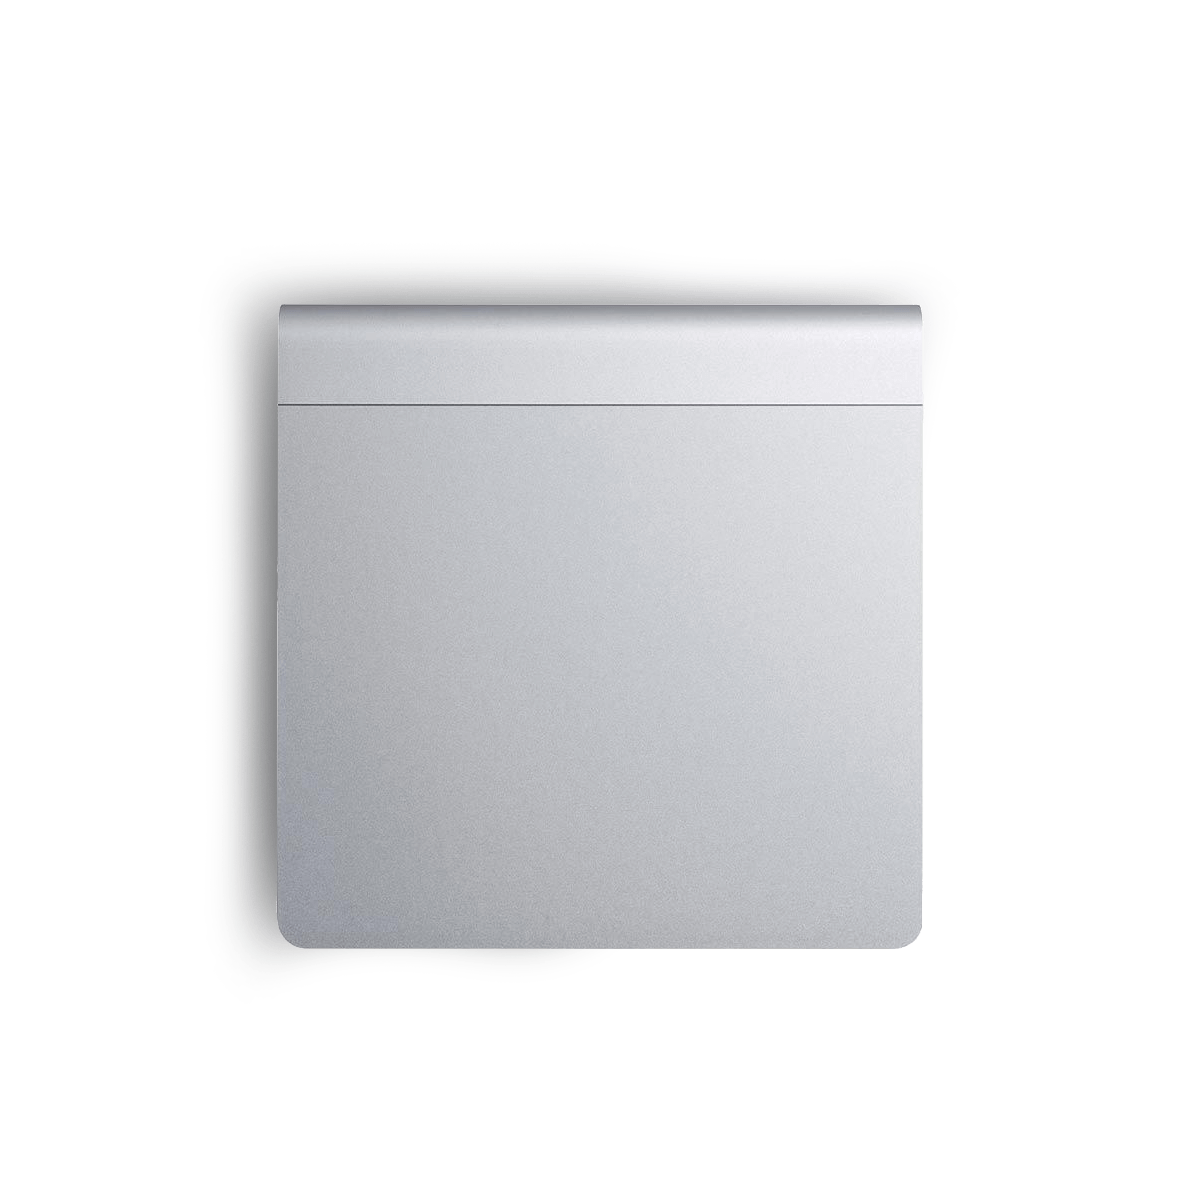 appletrackpad-transparent-for-stablegray